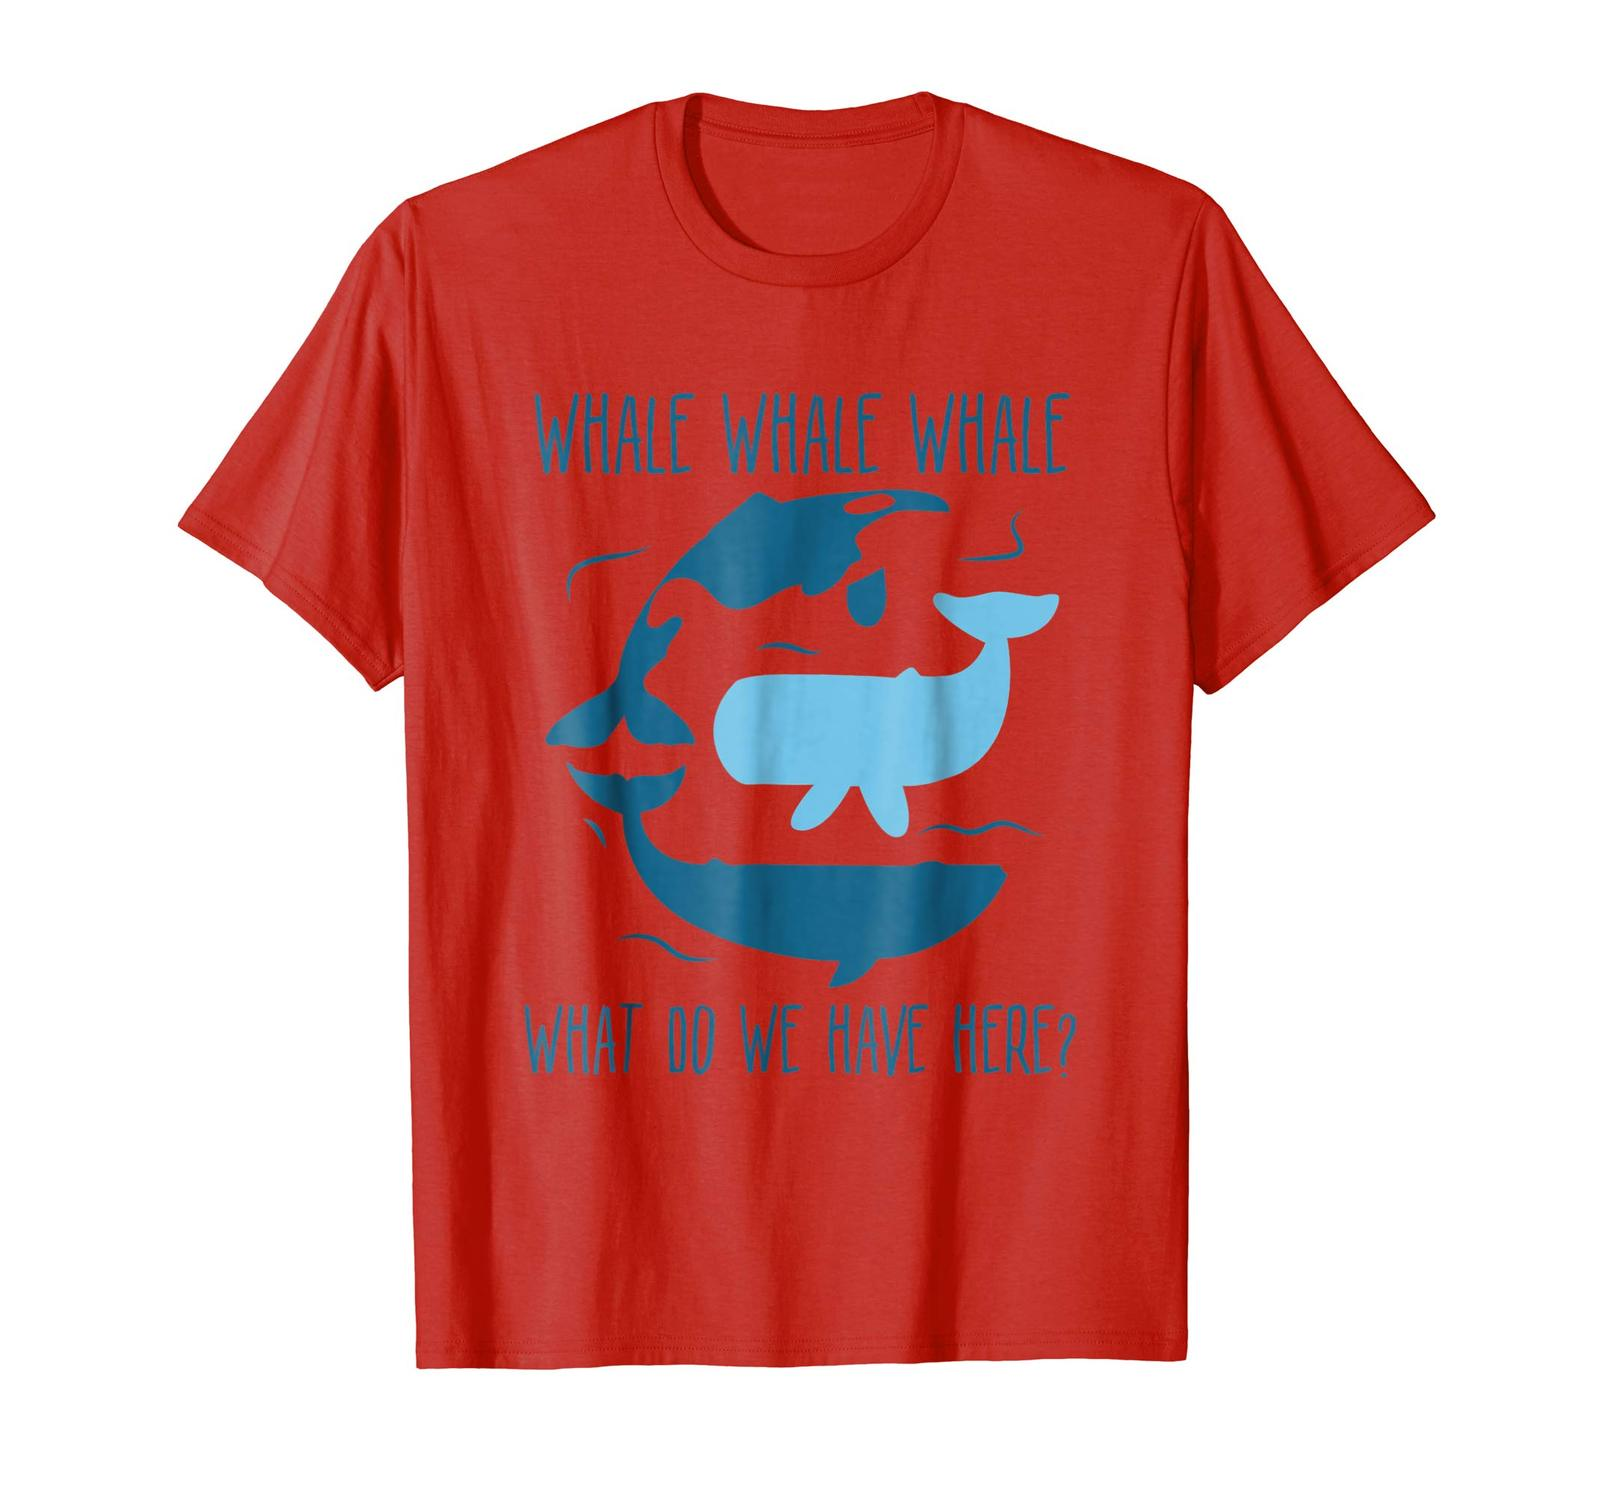 Primary image for Brother Shirts - Whale Whale Whale What Do We Have Here Funny Whale T-Shirt Men